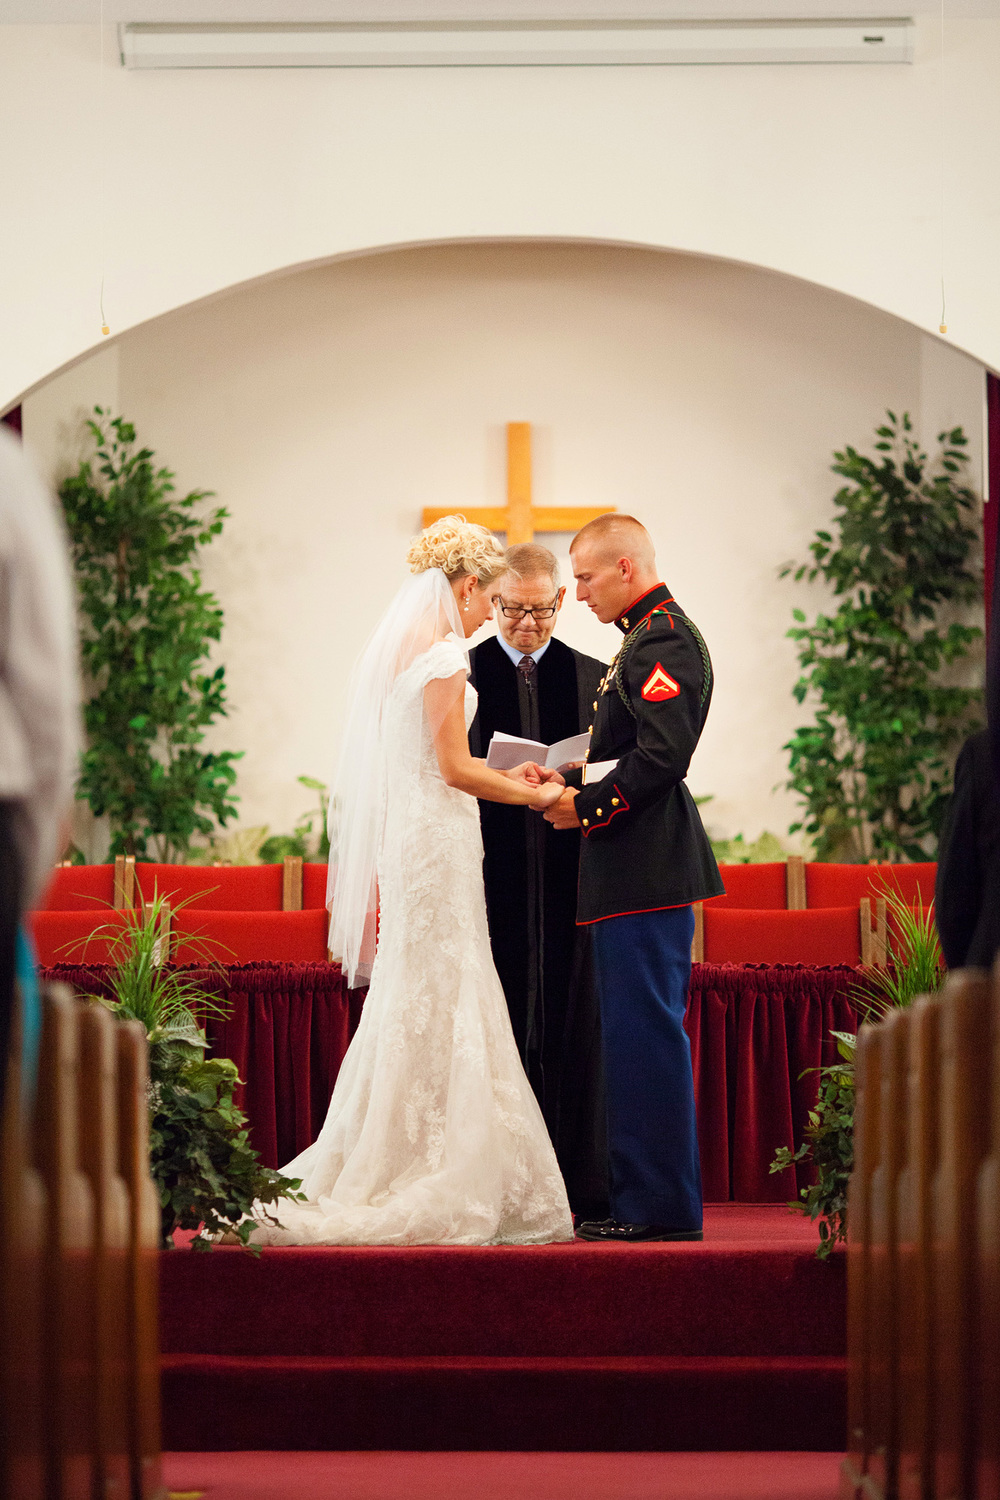 Bride & Groom Praying at their Wedding